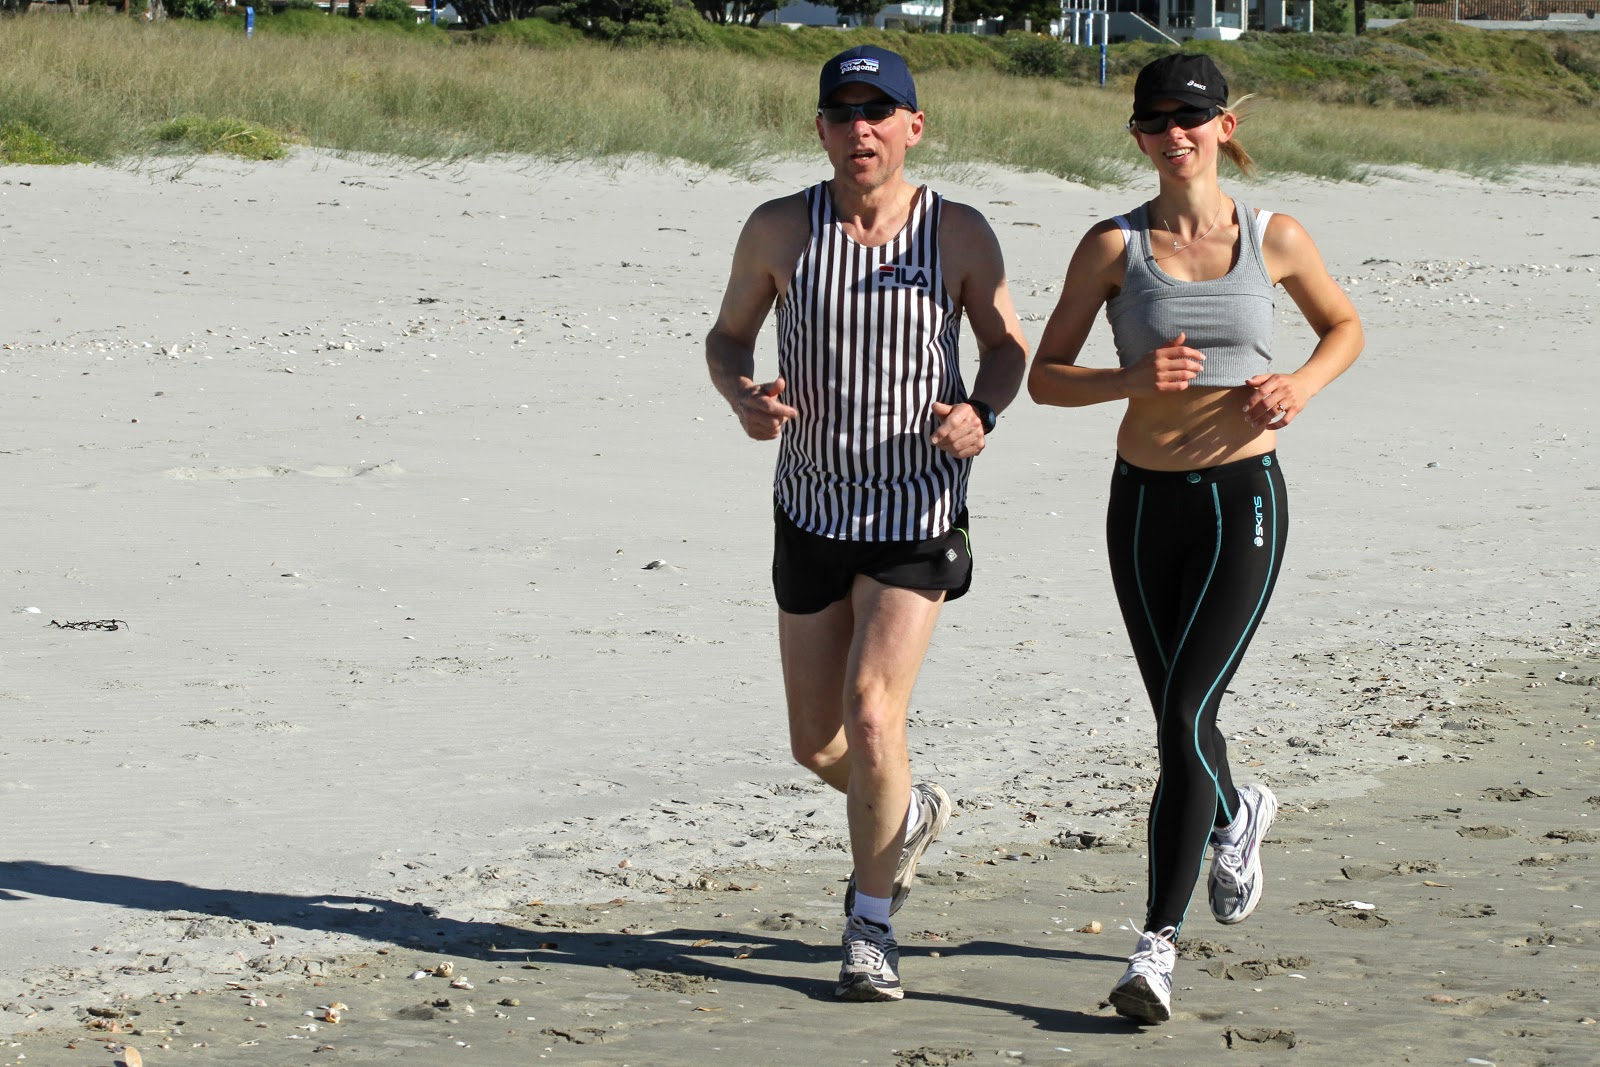 Ian_and_Susan_jogging_on_Maunganui_beach_3_(5644495596).jpg